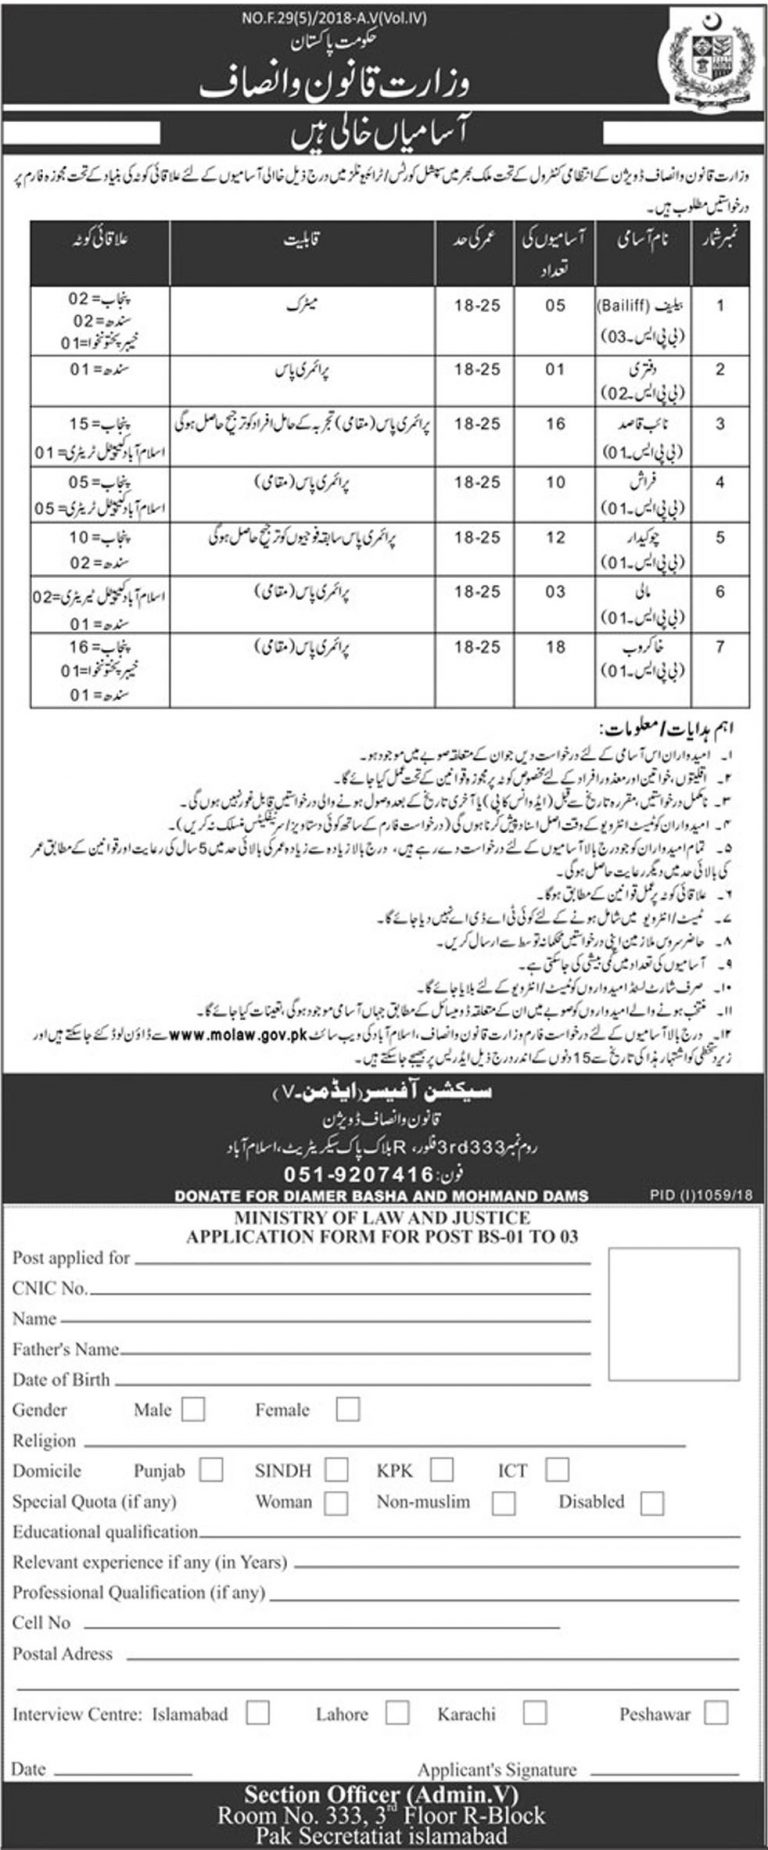 Jobs in Ministry of Law and Justice 2018 Application Form Download